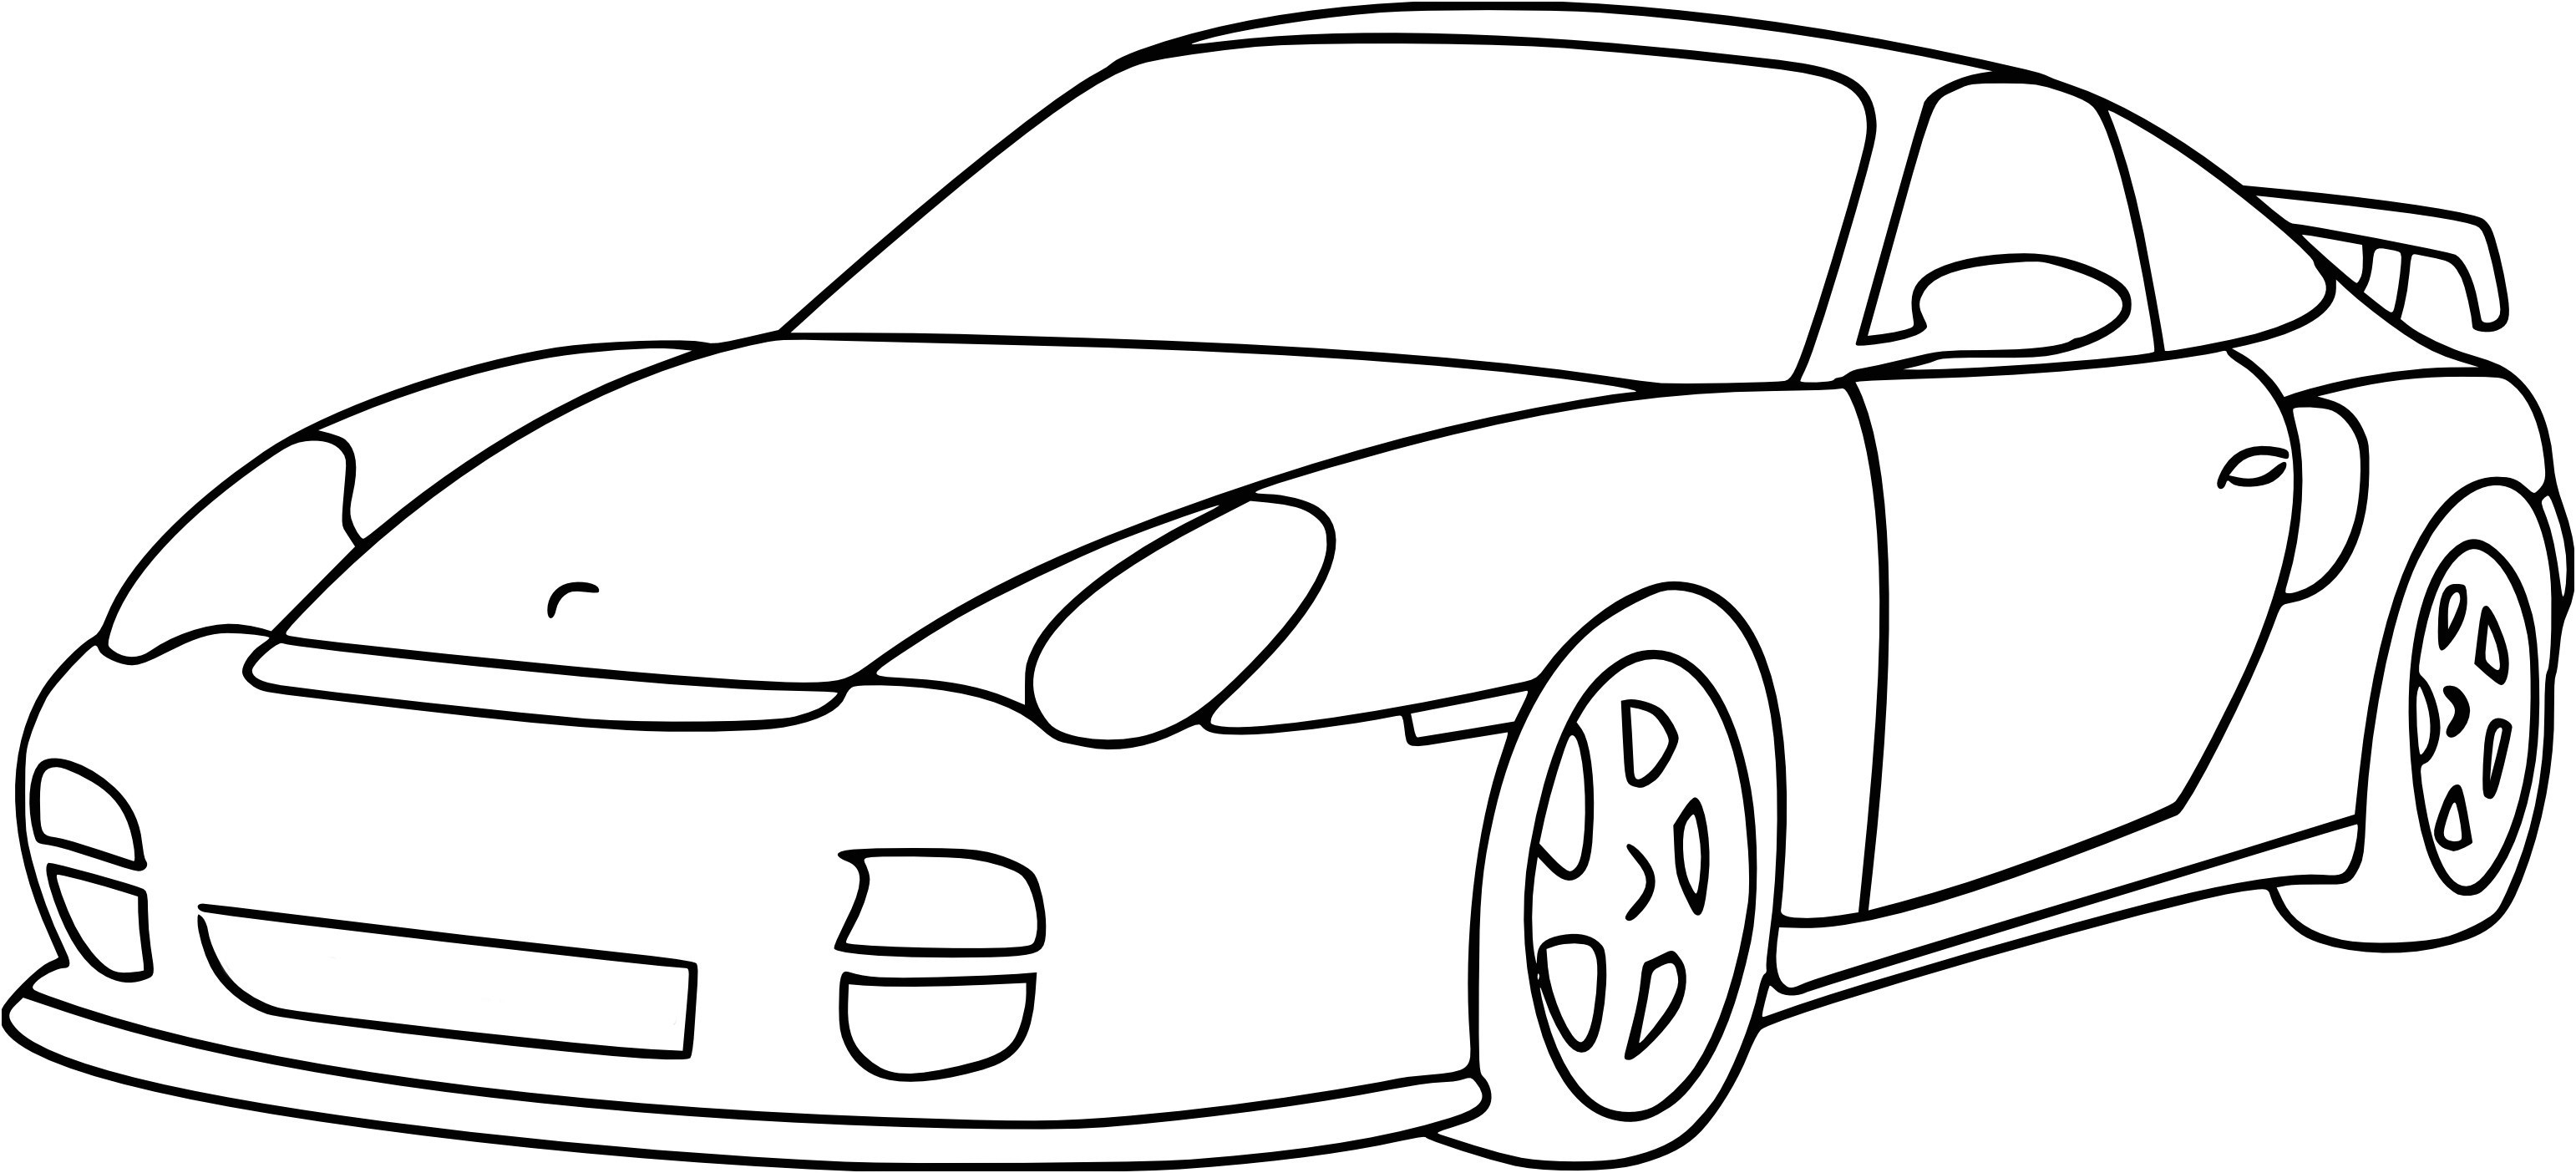 12 Génial Coloriage Voiture Fast And Furious Stock - Coloriage à Coloriage Voiture Fast And Furious